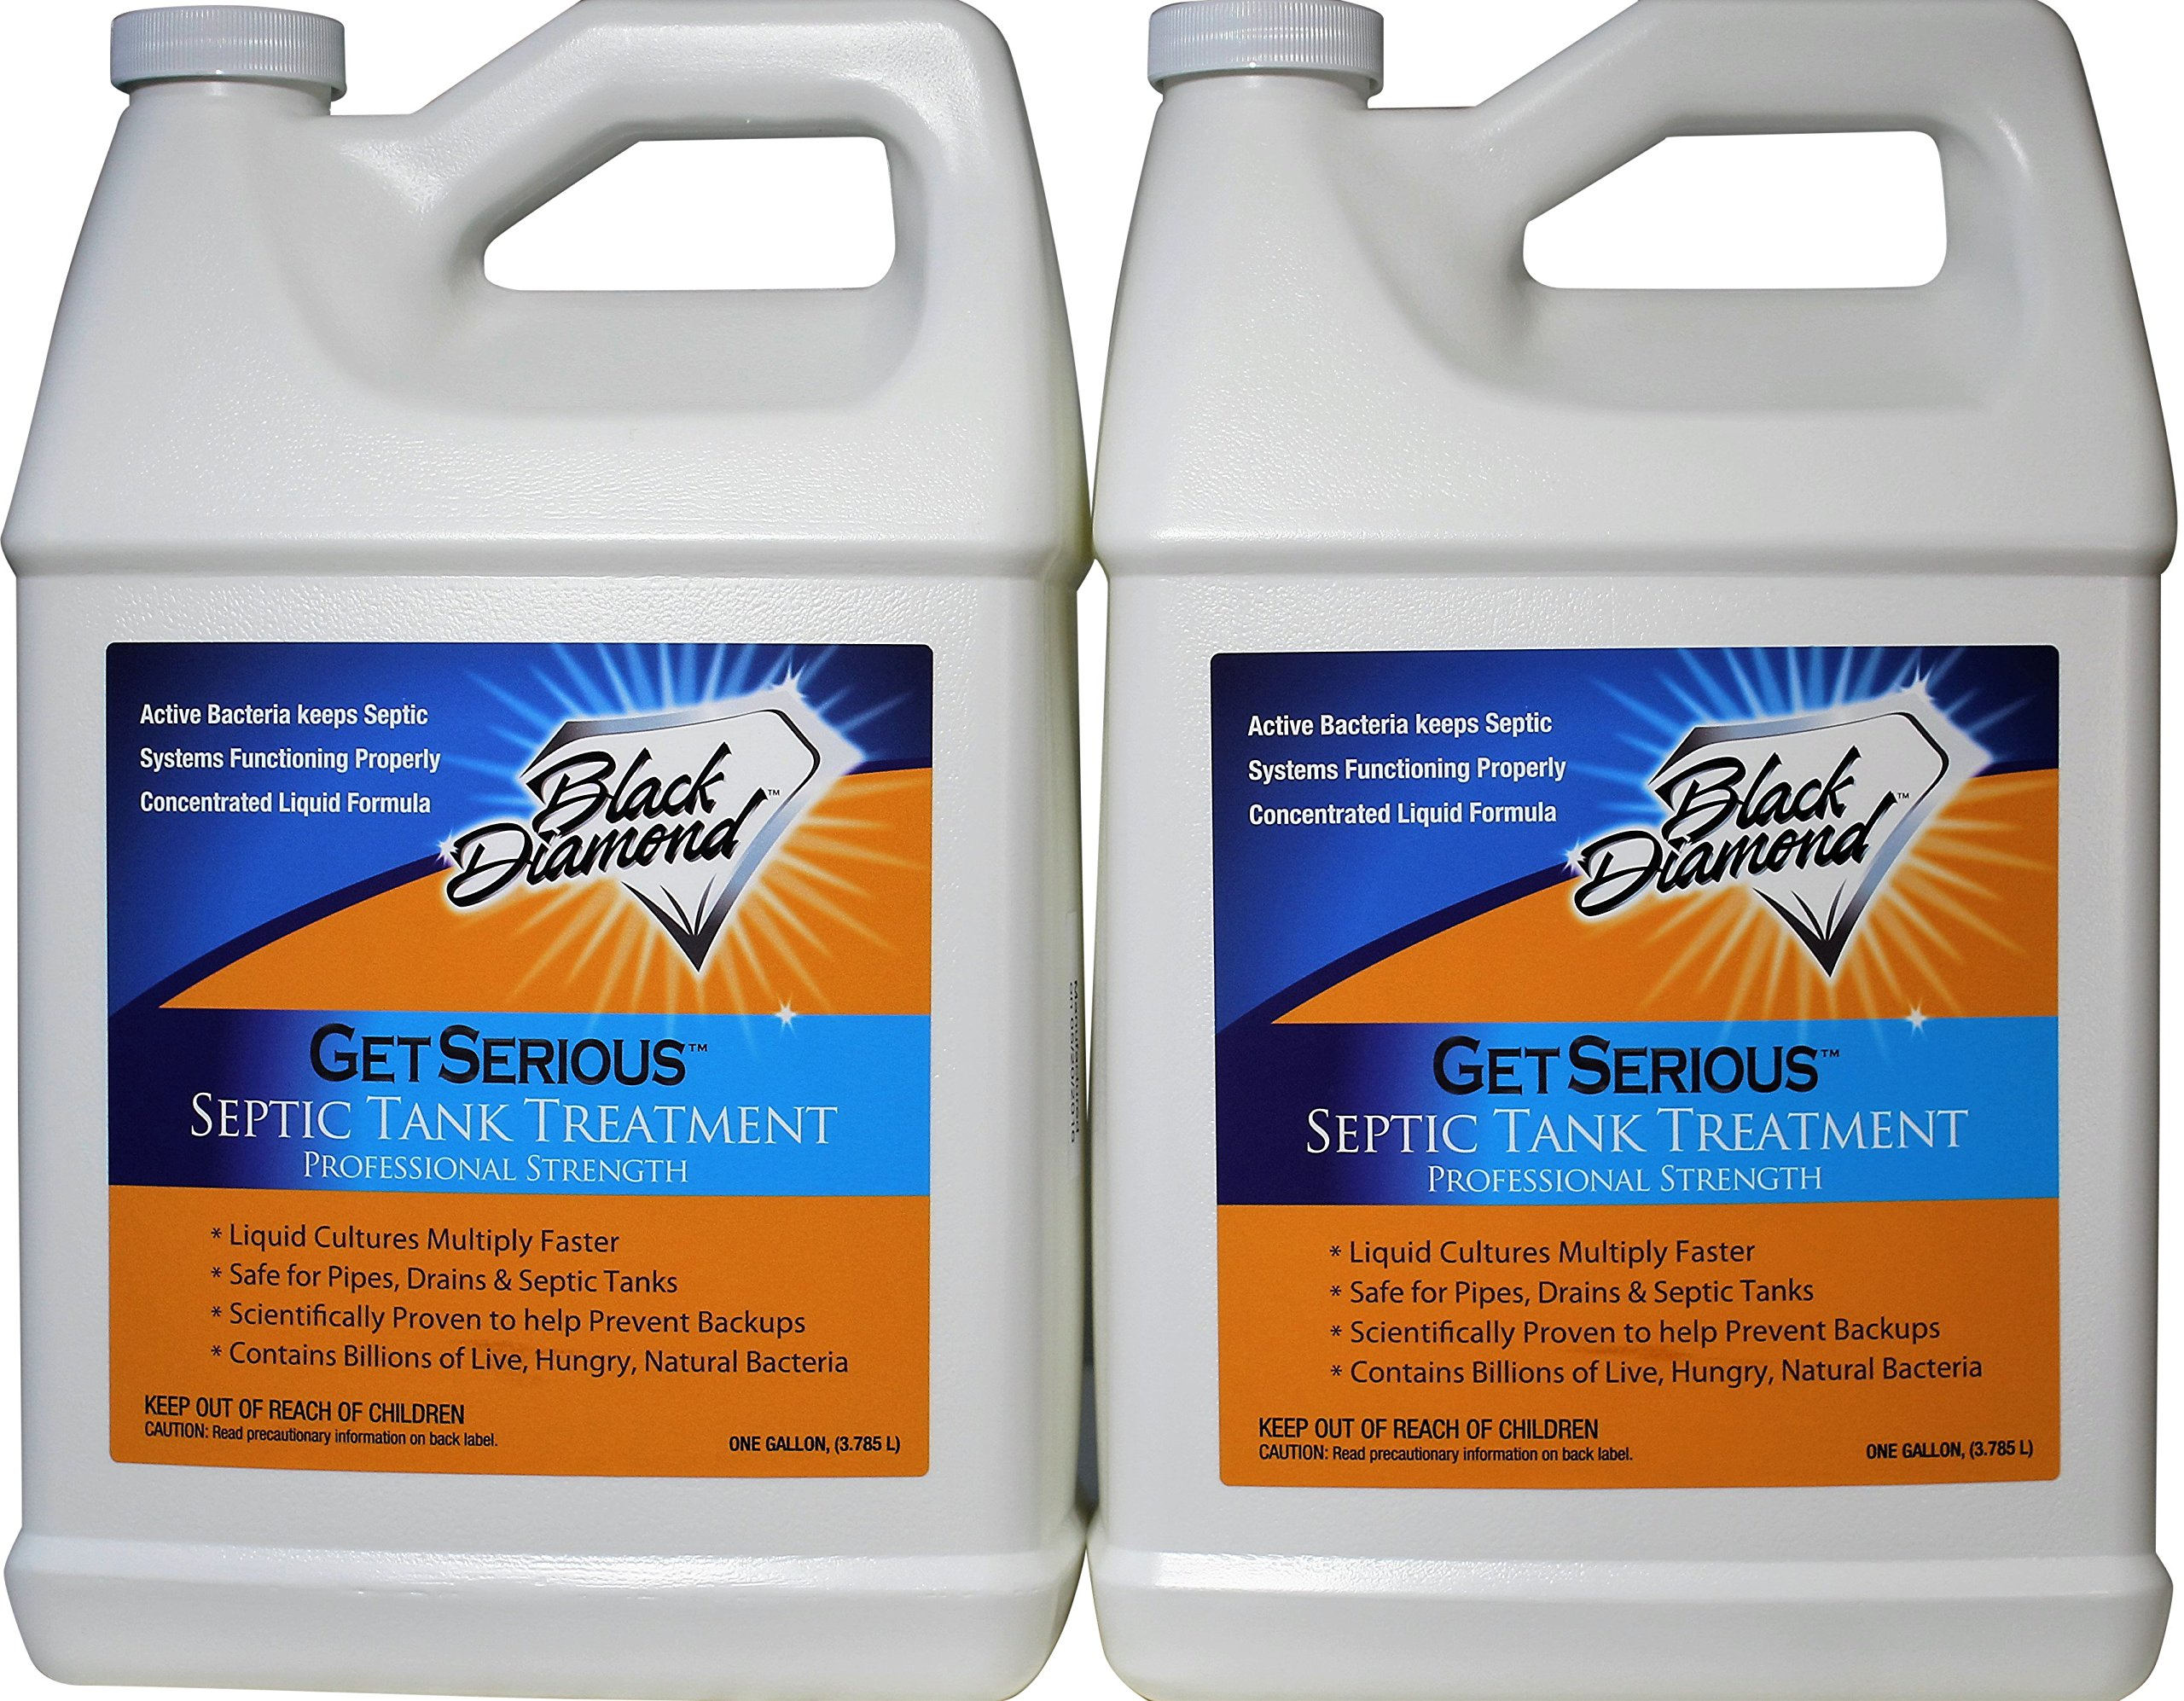 Black Diamond Stoneworks GET SERIOUS Septic Tank Treatment Liquid Natural Enzymes for Residential, Commercial, Industrial, RV's System. (2, Gallon) by Black Diamond Stoneworks